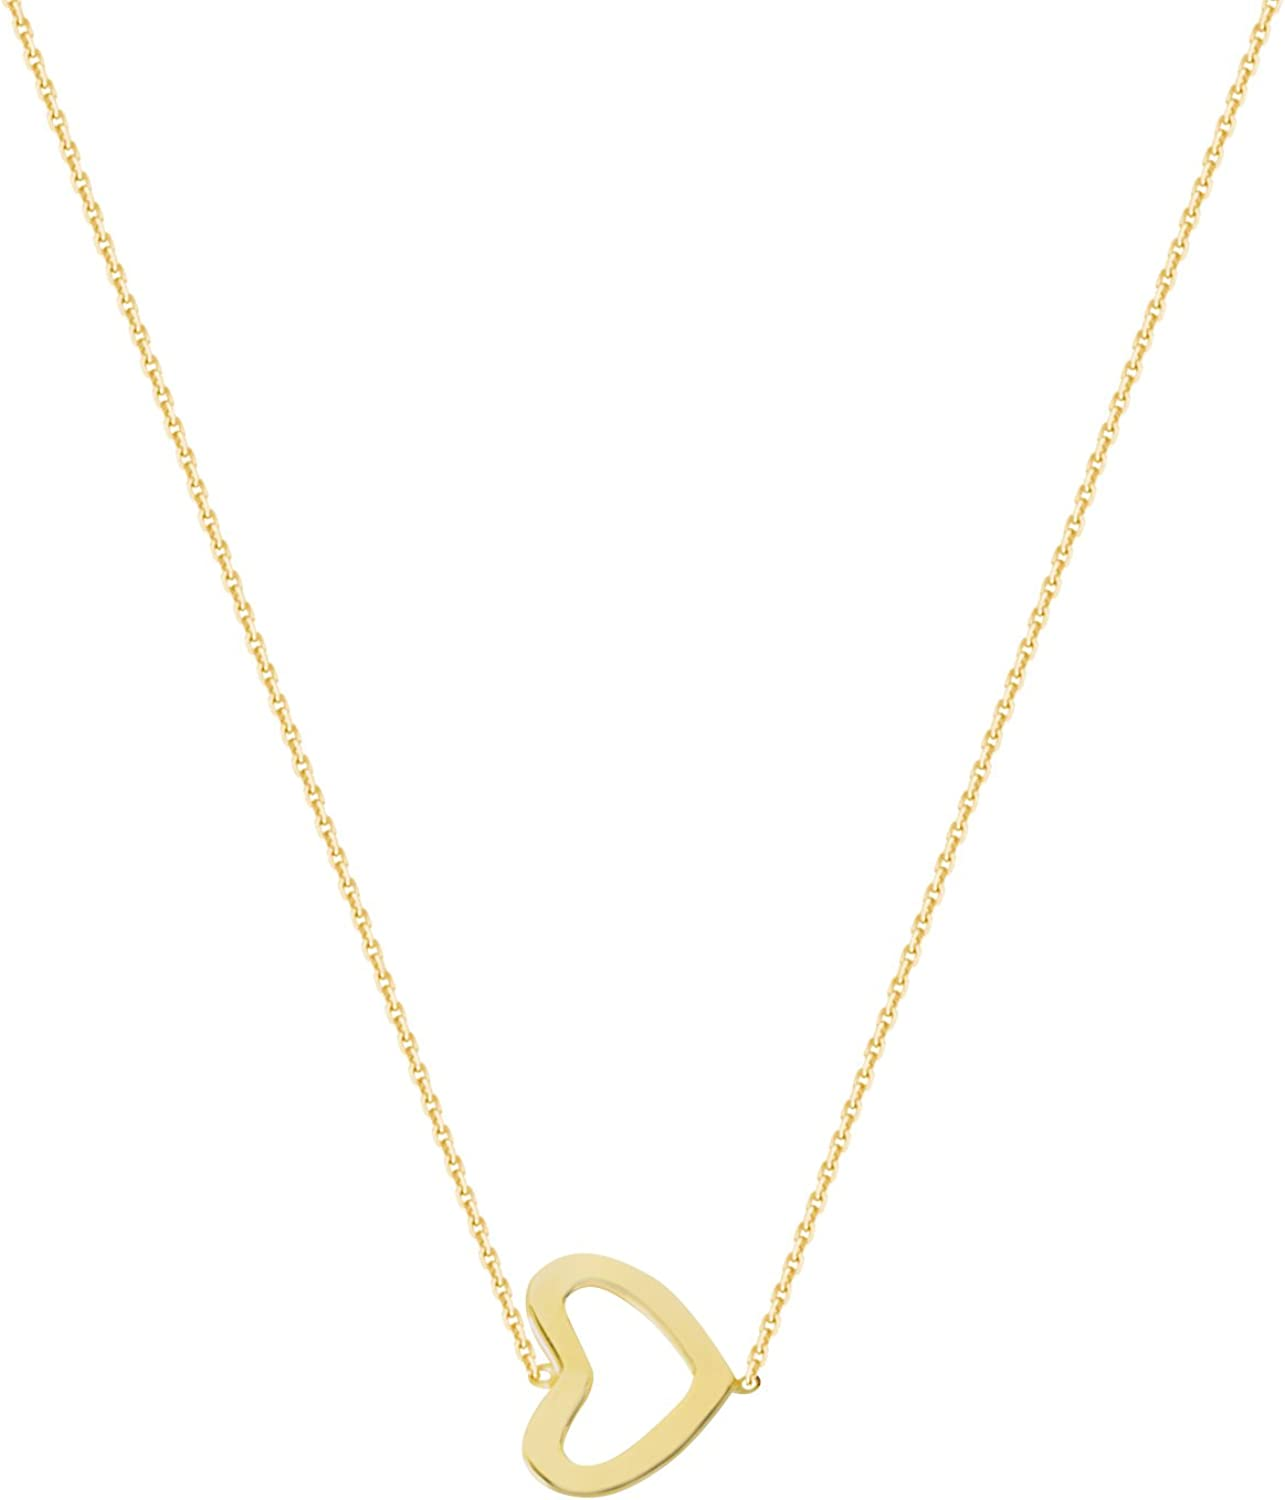 TINY 14k White or Rose or Yellow Gold Side Heart Adjustable Necklace Pendant NEW